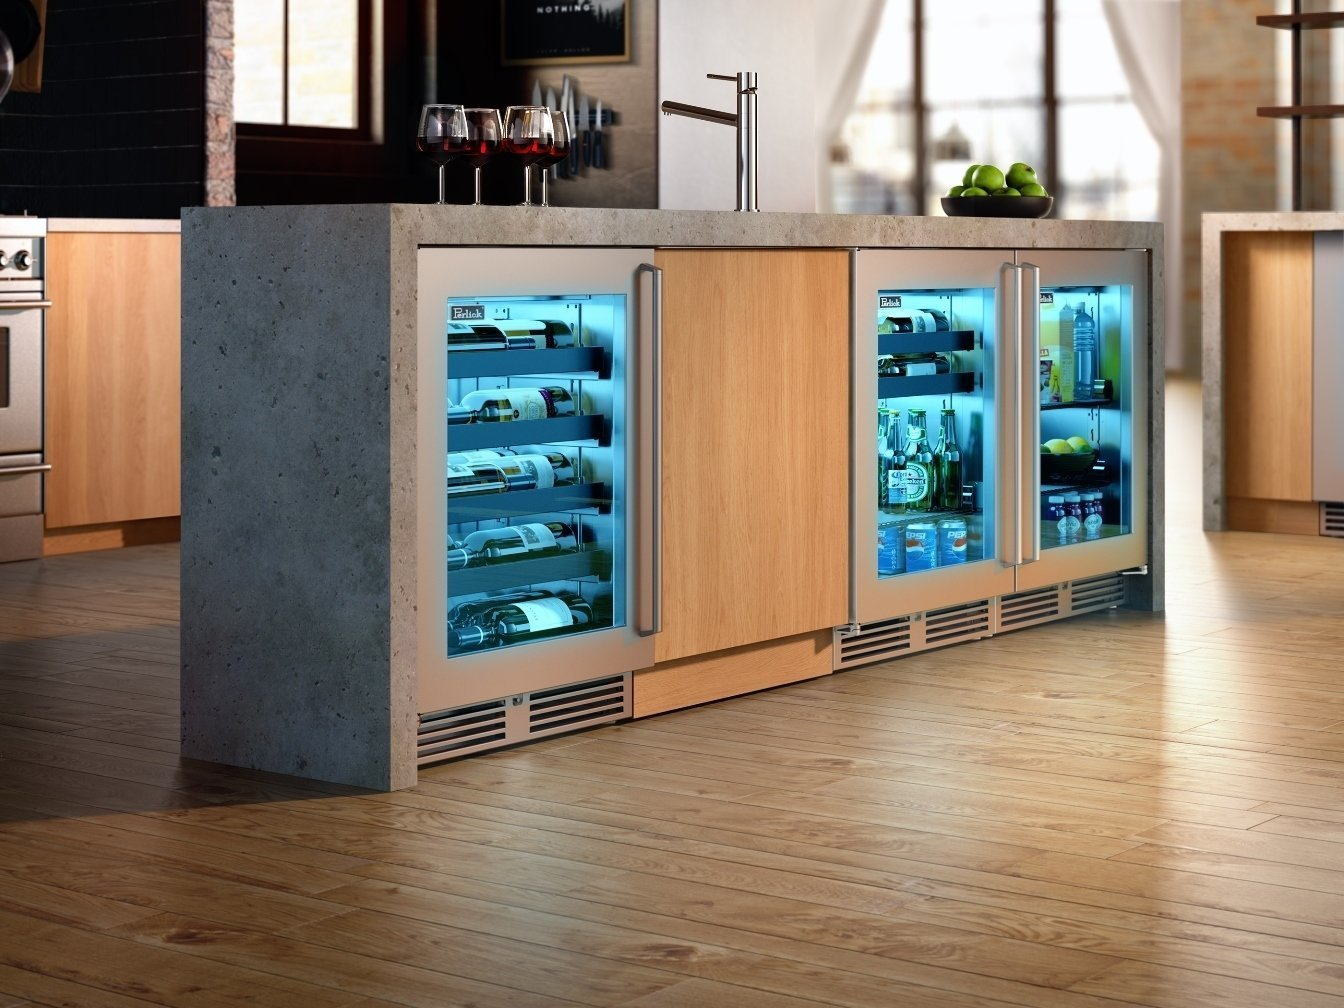 Kitchen, Wine Cooler, Wood Cabinet, Medium Hardwood Floor, and Concrete Counter Perlick wine cooler  Photo 7 of 7 in 7 Design Tips For a Chef-Worthy Kitchen